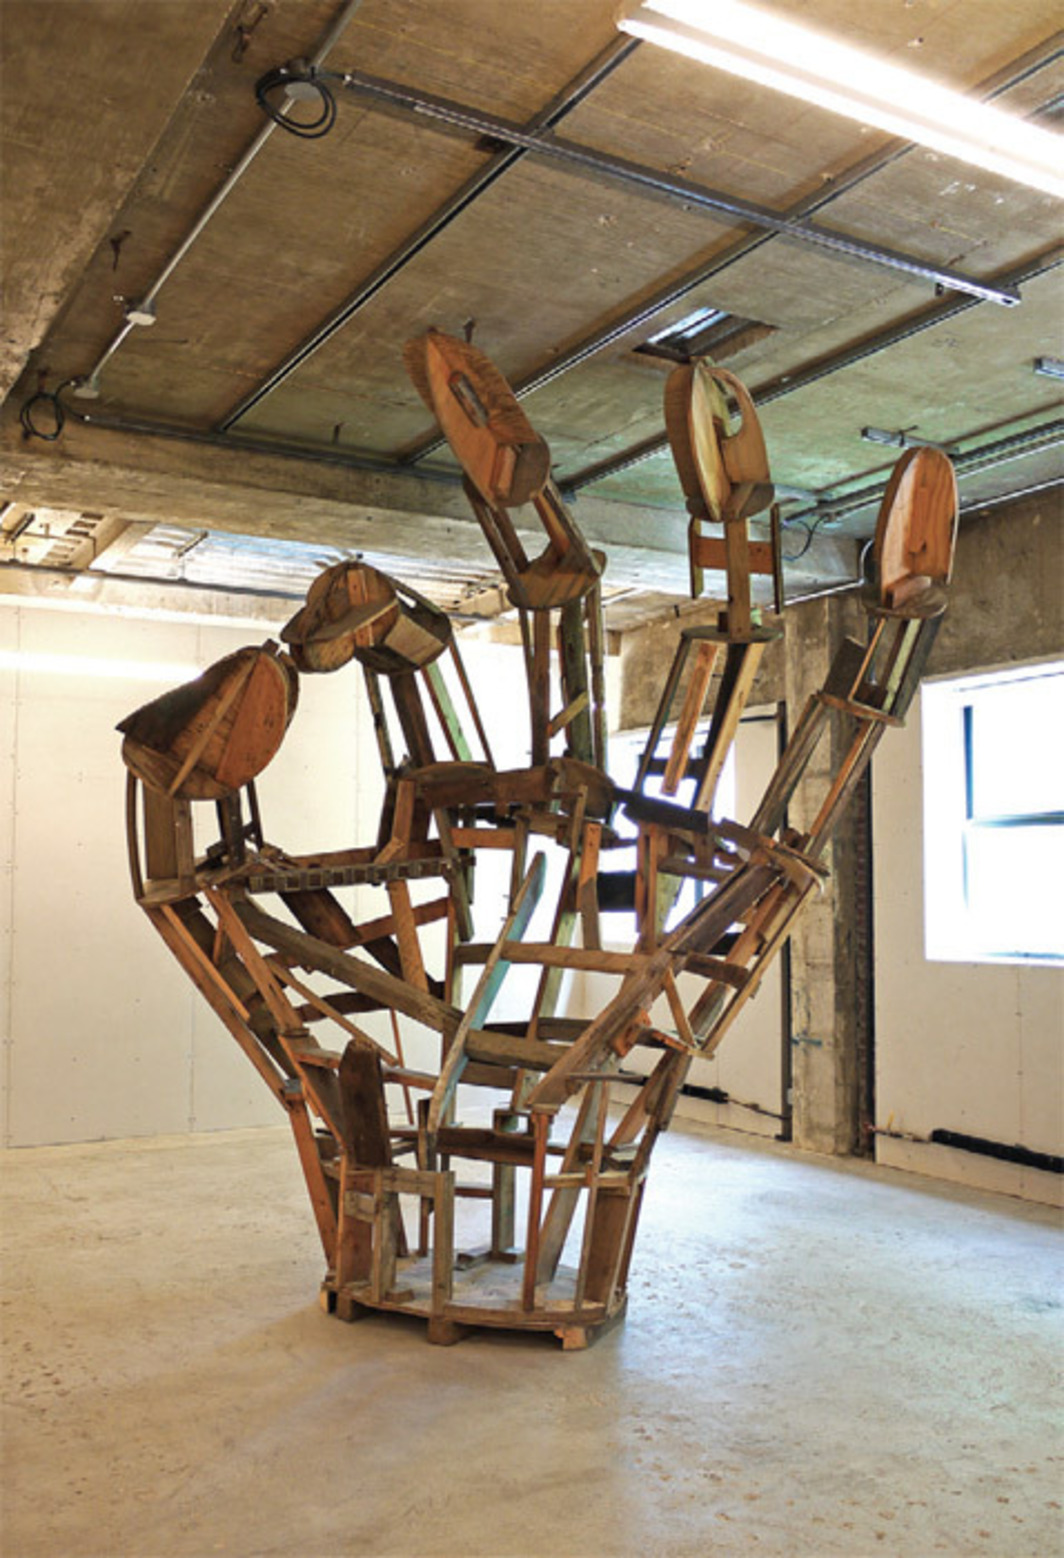 "Peter Coffin, Untitled (Unfinished OK Hand), 2012, wood, wire mesh, bolts, screws, 12' 7 1/2"" x 6' 5"" x 11' 6""."